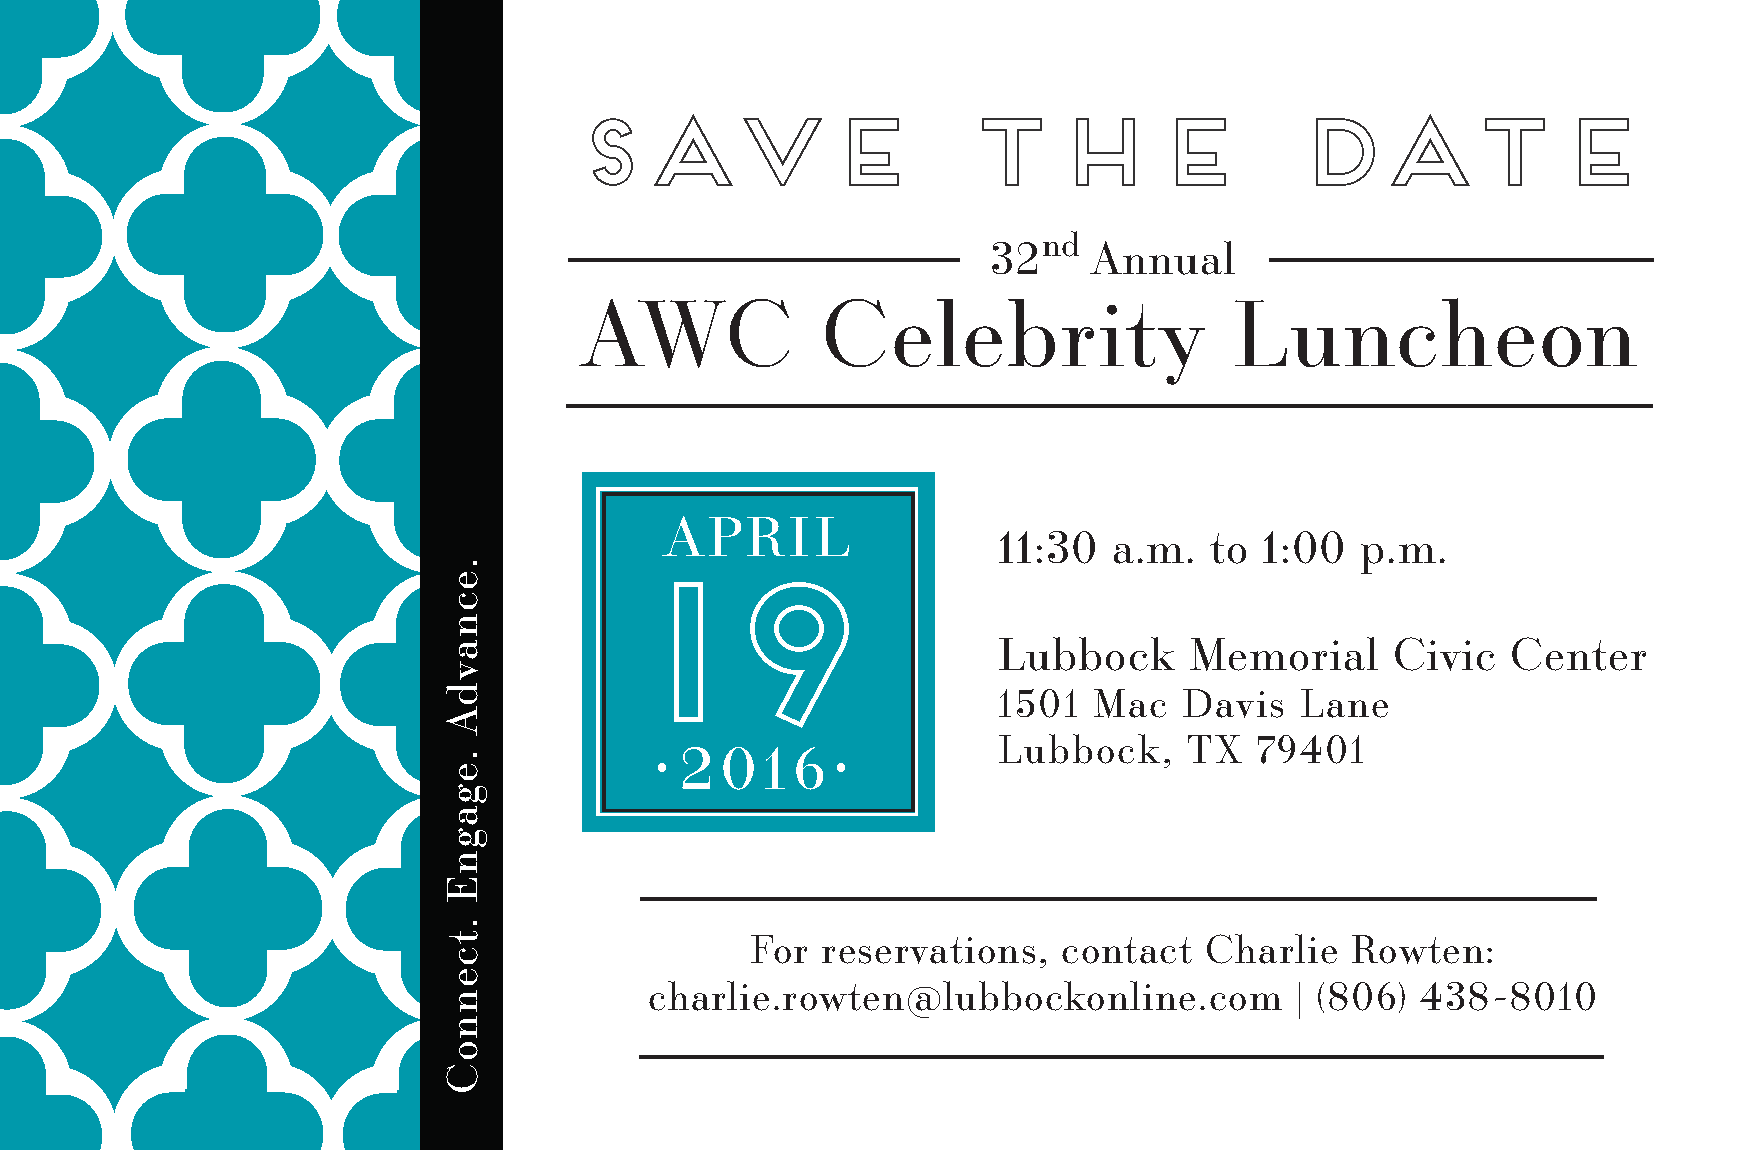 AWC Celebrity Luncheon Save the Date_Page_1